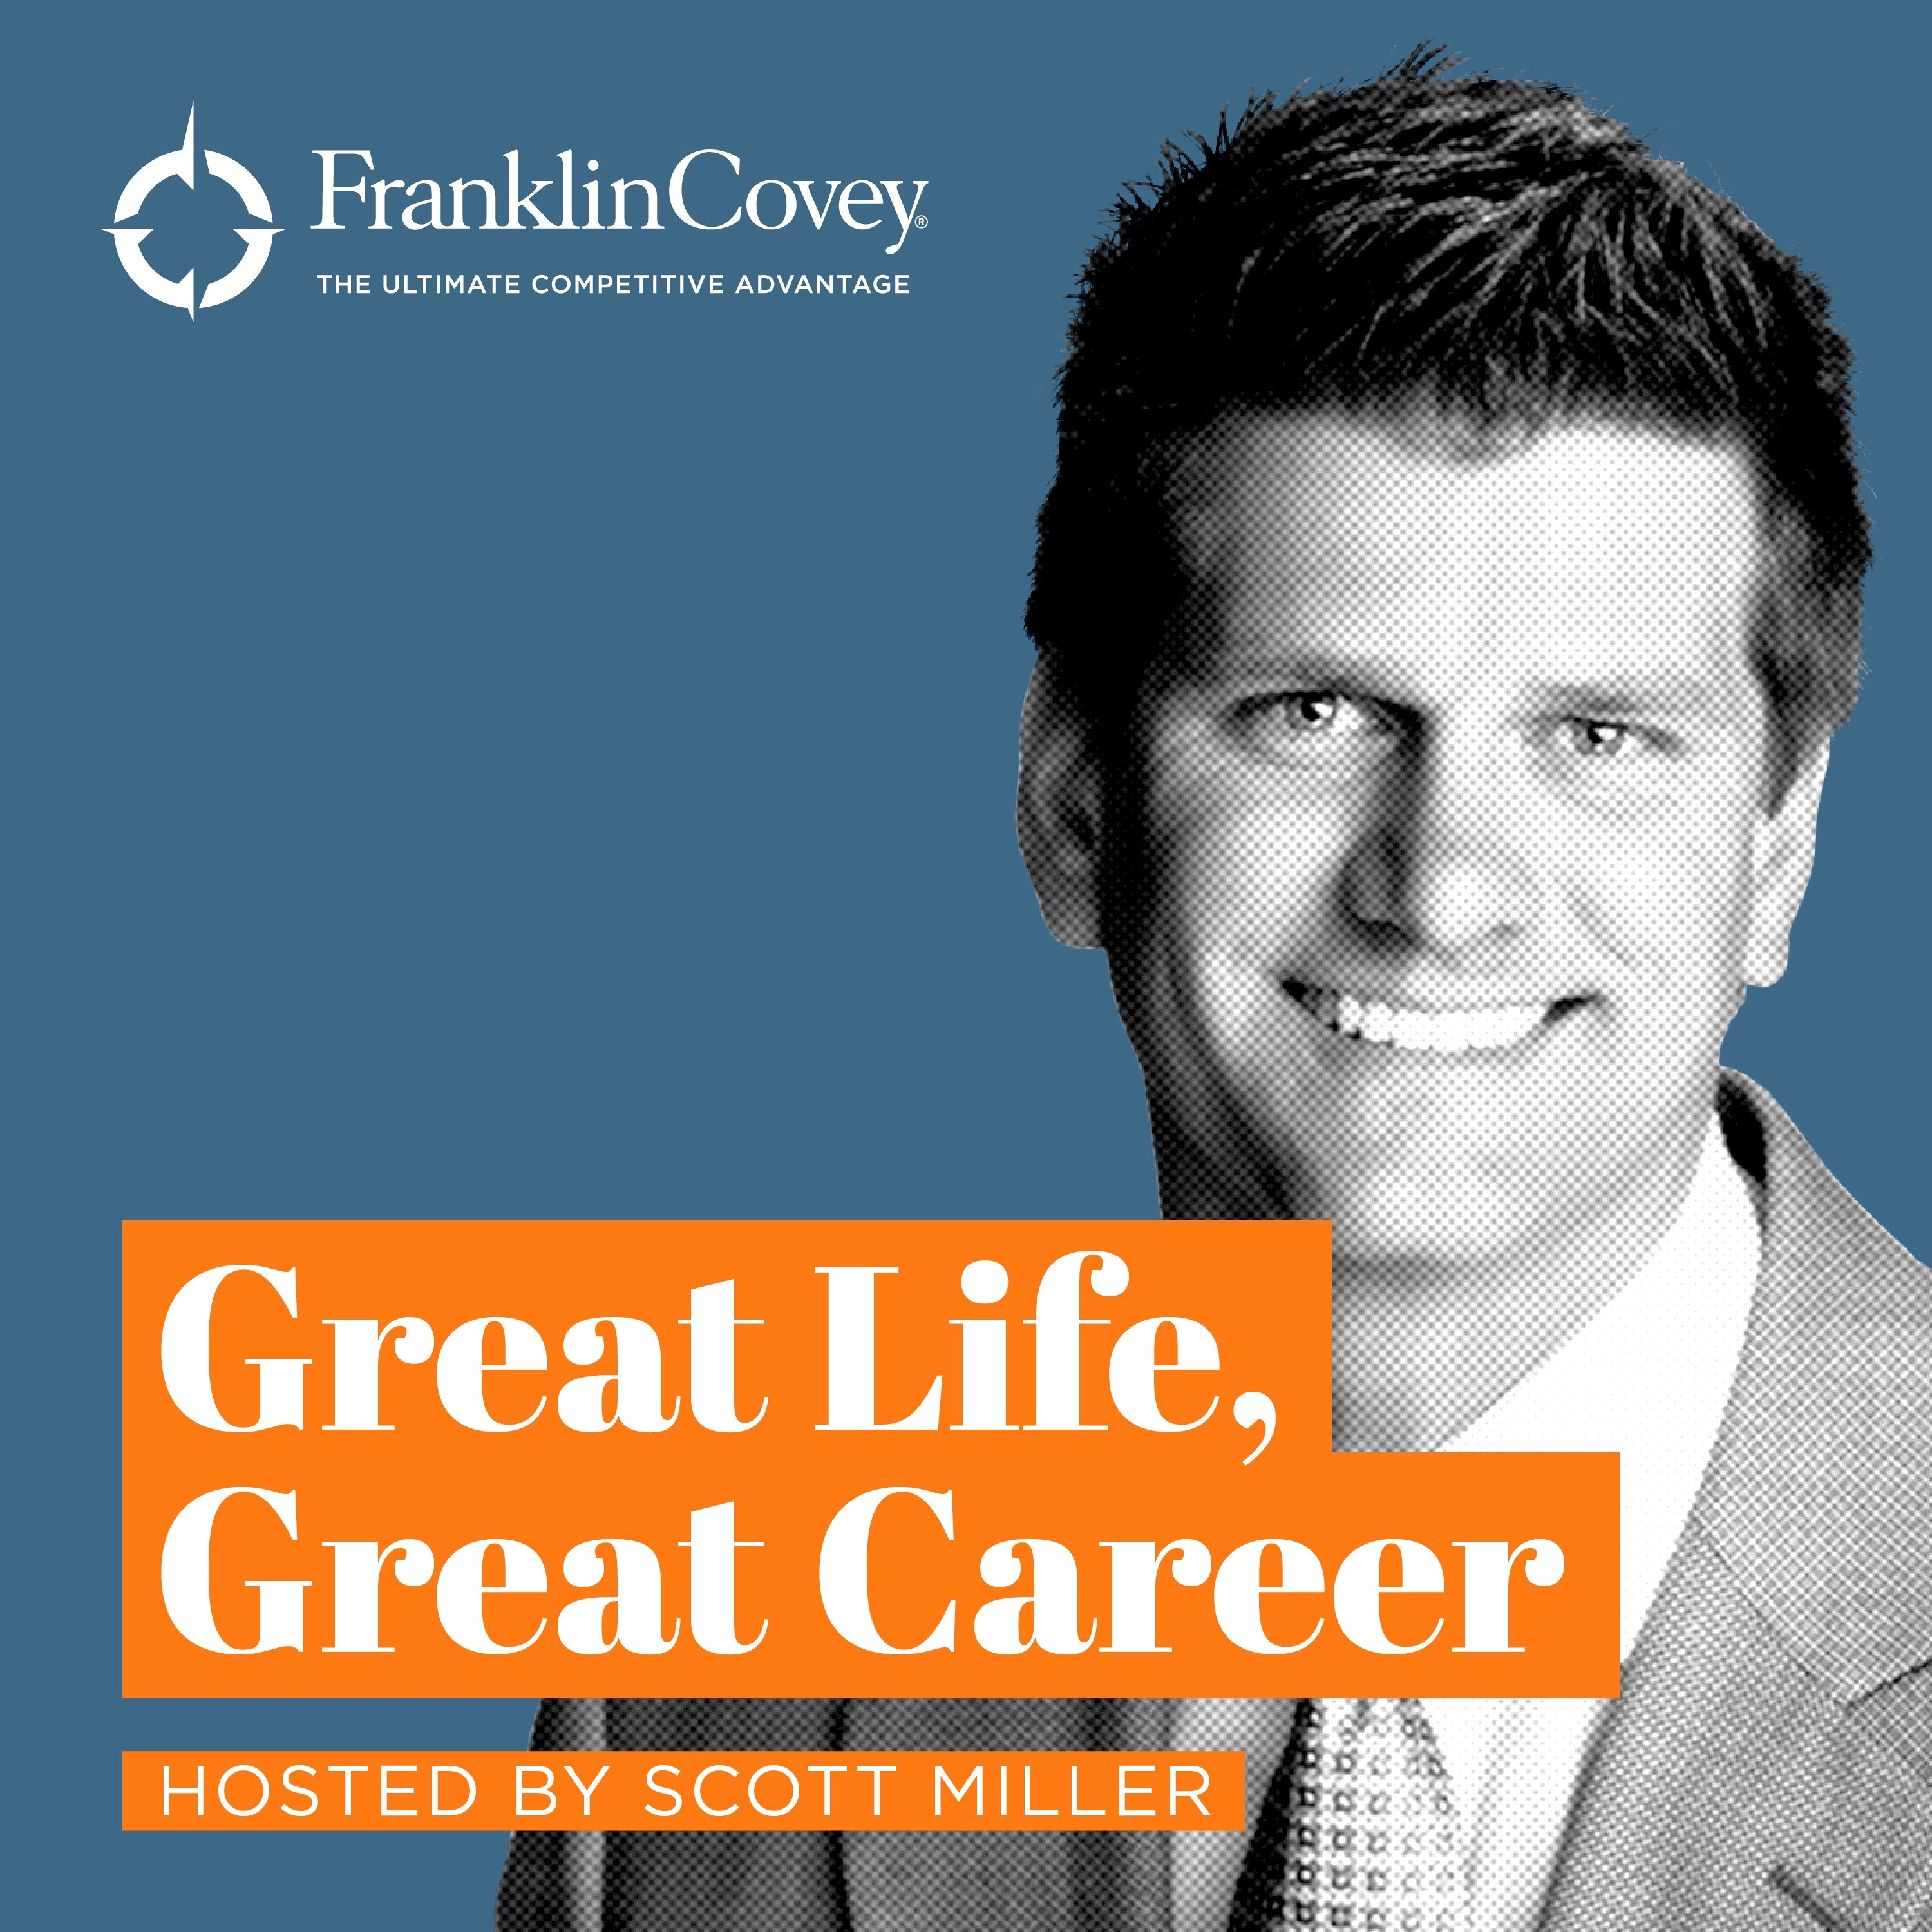 Episode #44: All things leadership with FranklinCovey Senior Vice President Jen Colosimo